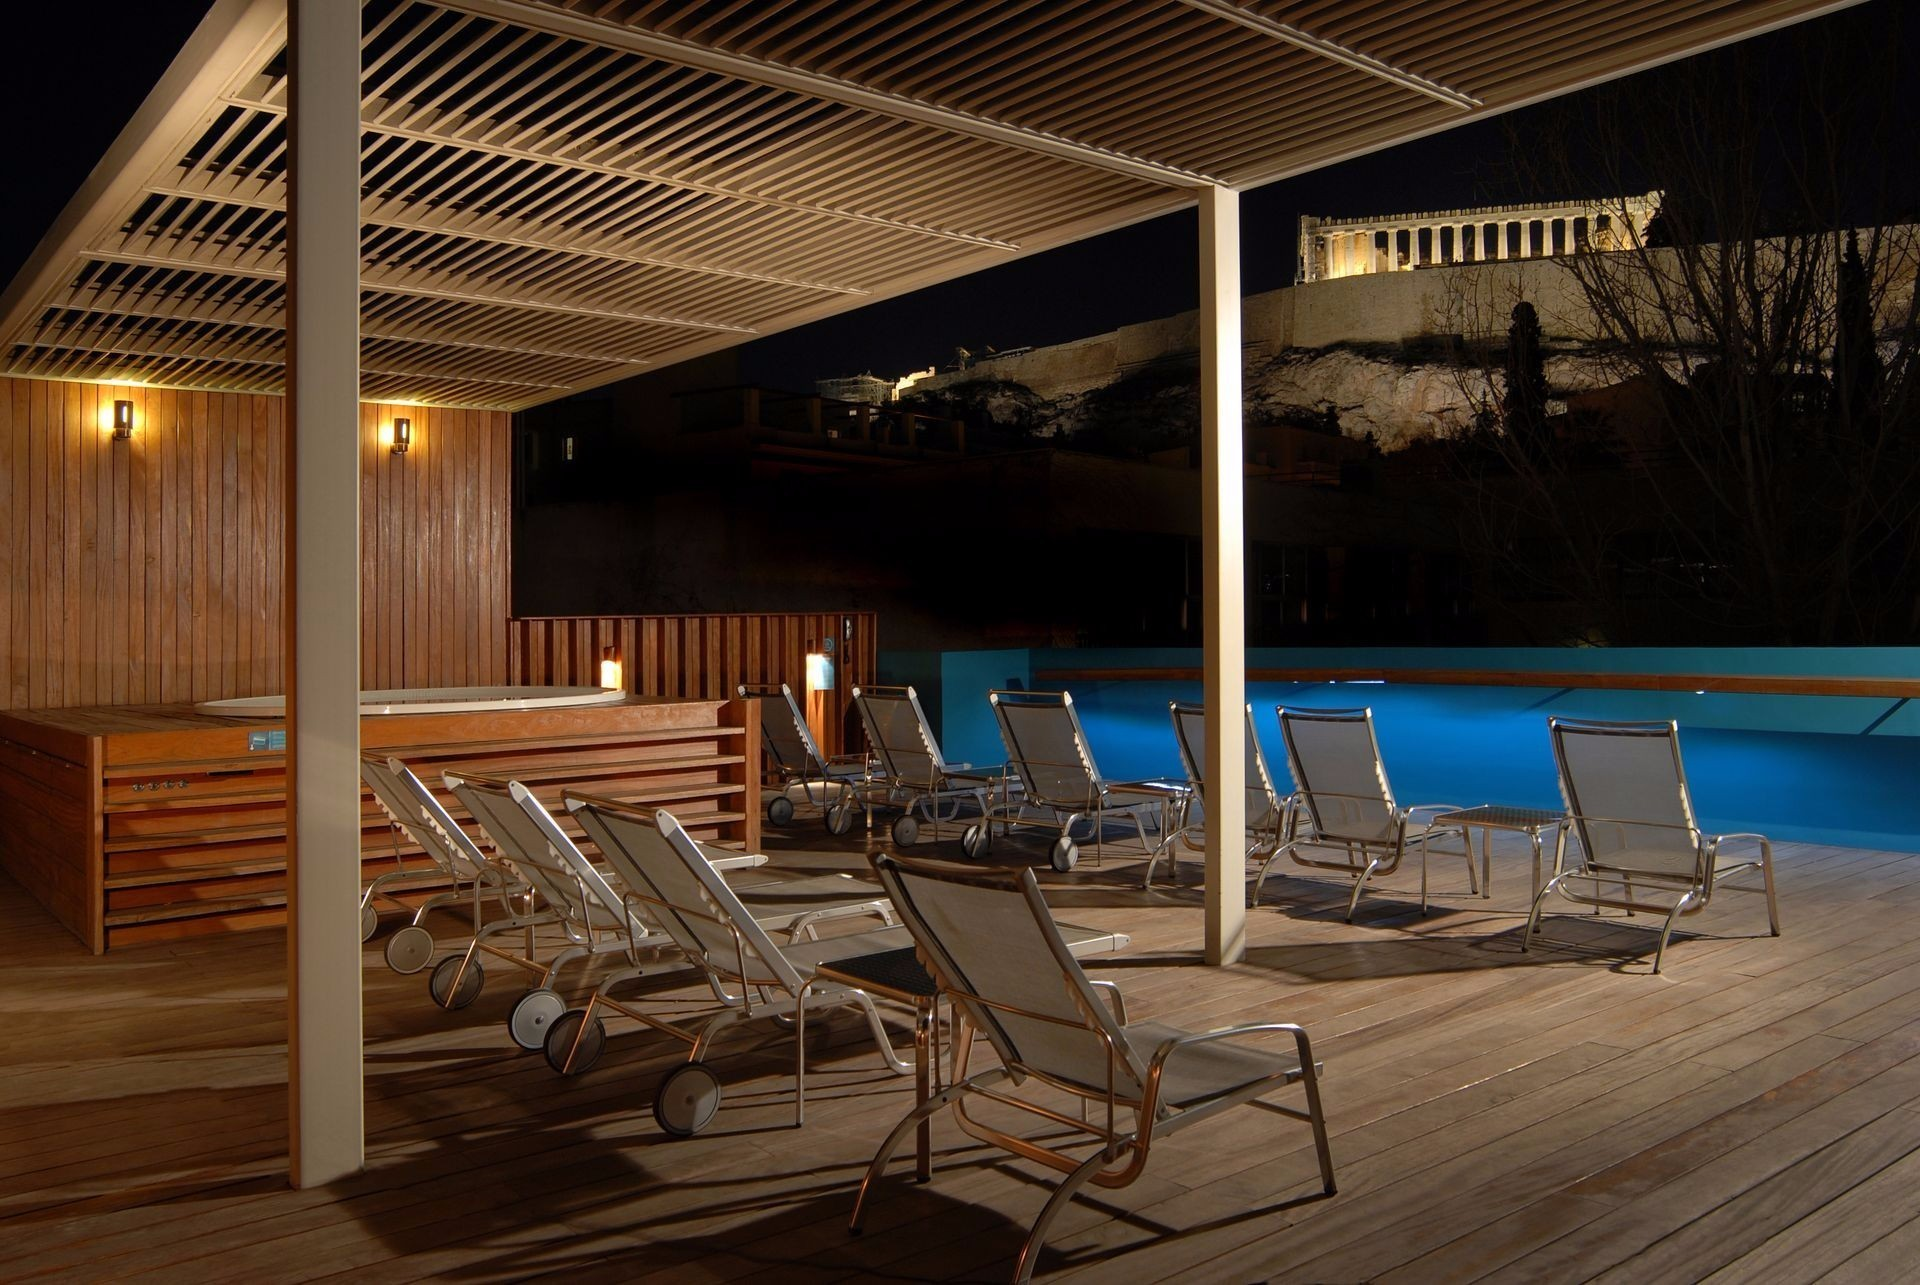 4* Luxury Athens city hotel | Herodion Hotel : herodion.gr